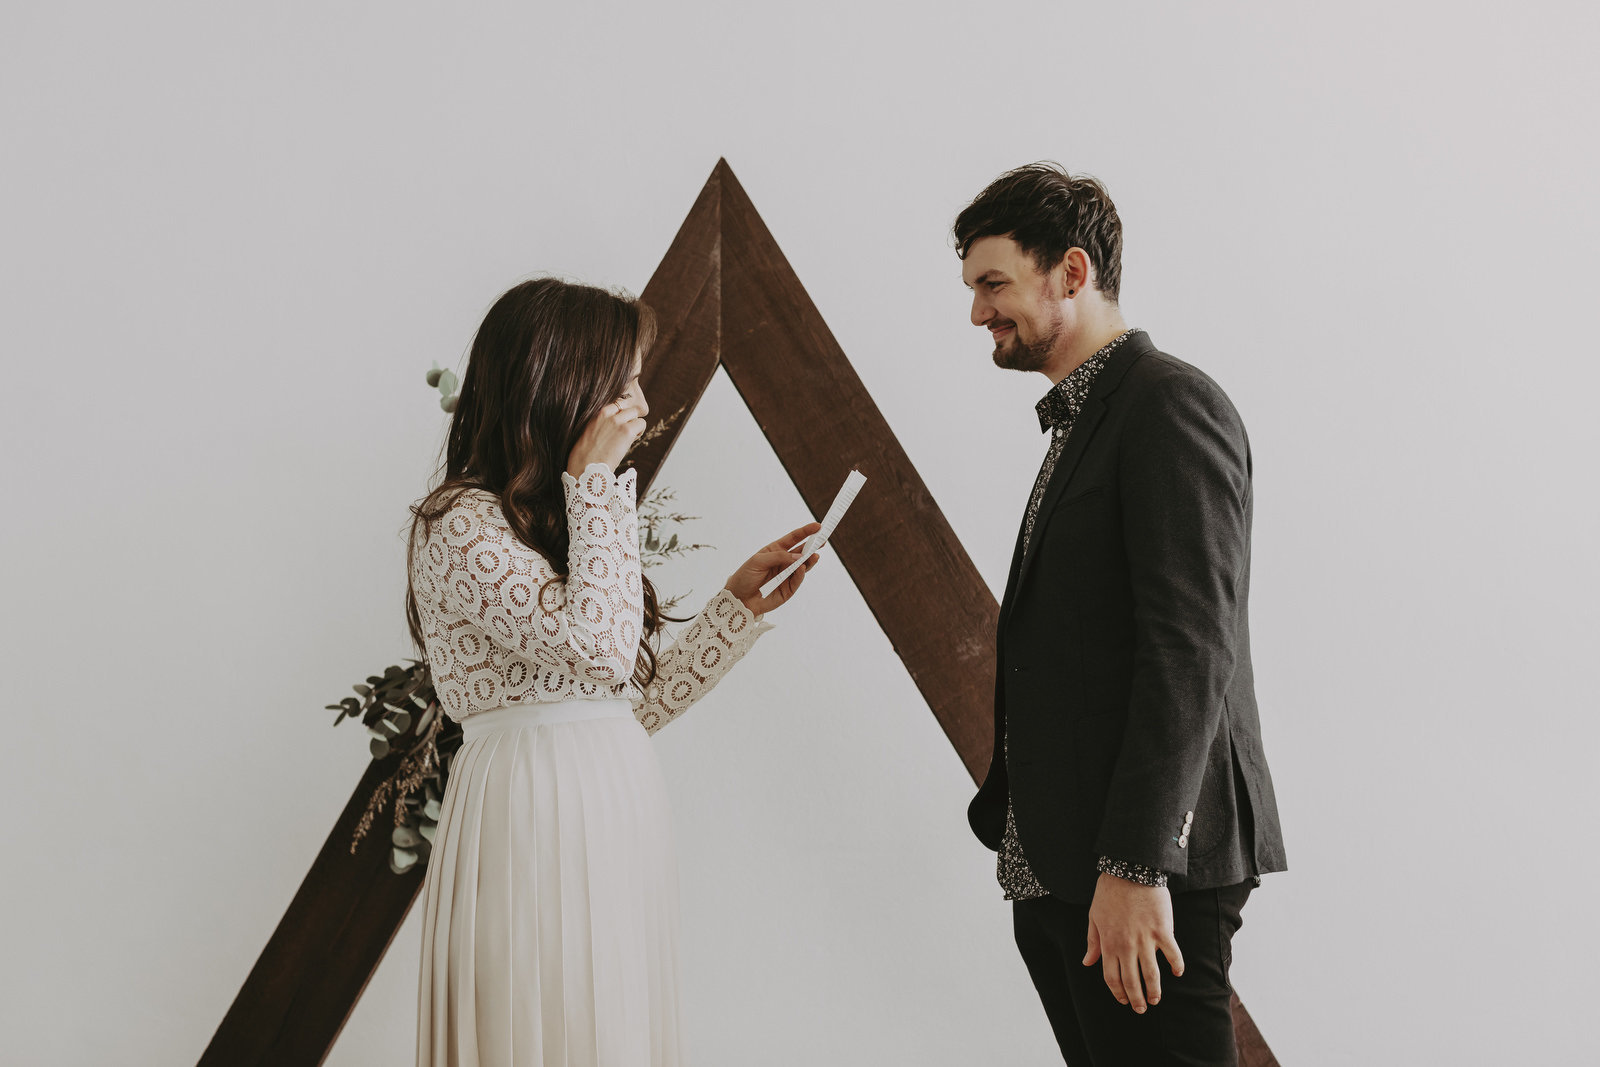 athena-and-camron-sydney-wedding-boho-romance-james-simmons-photography-christian-couple-goals45